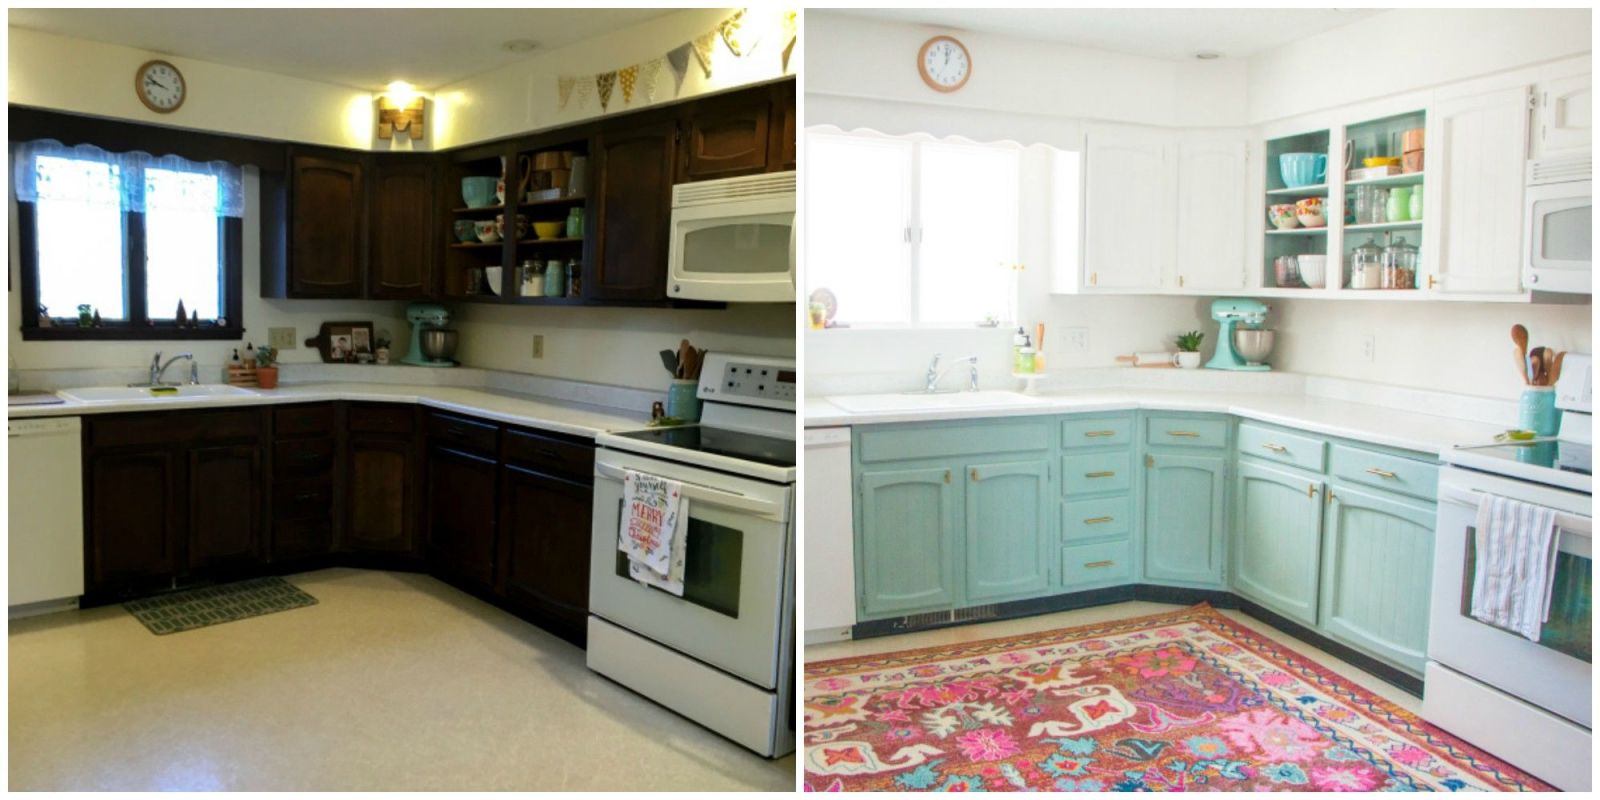 Home Renovation Ideas Before And After Home Makeover Ideas  Before And After Pictures Of House Renovations